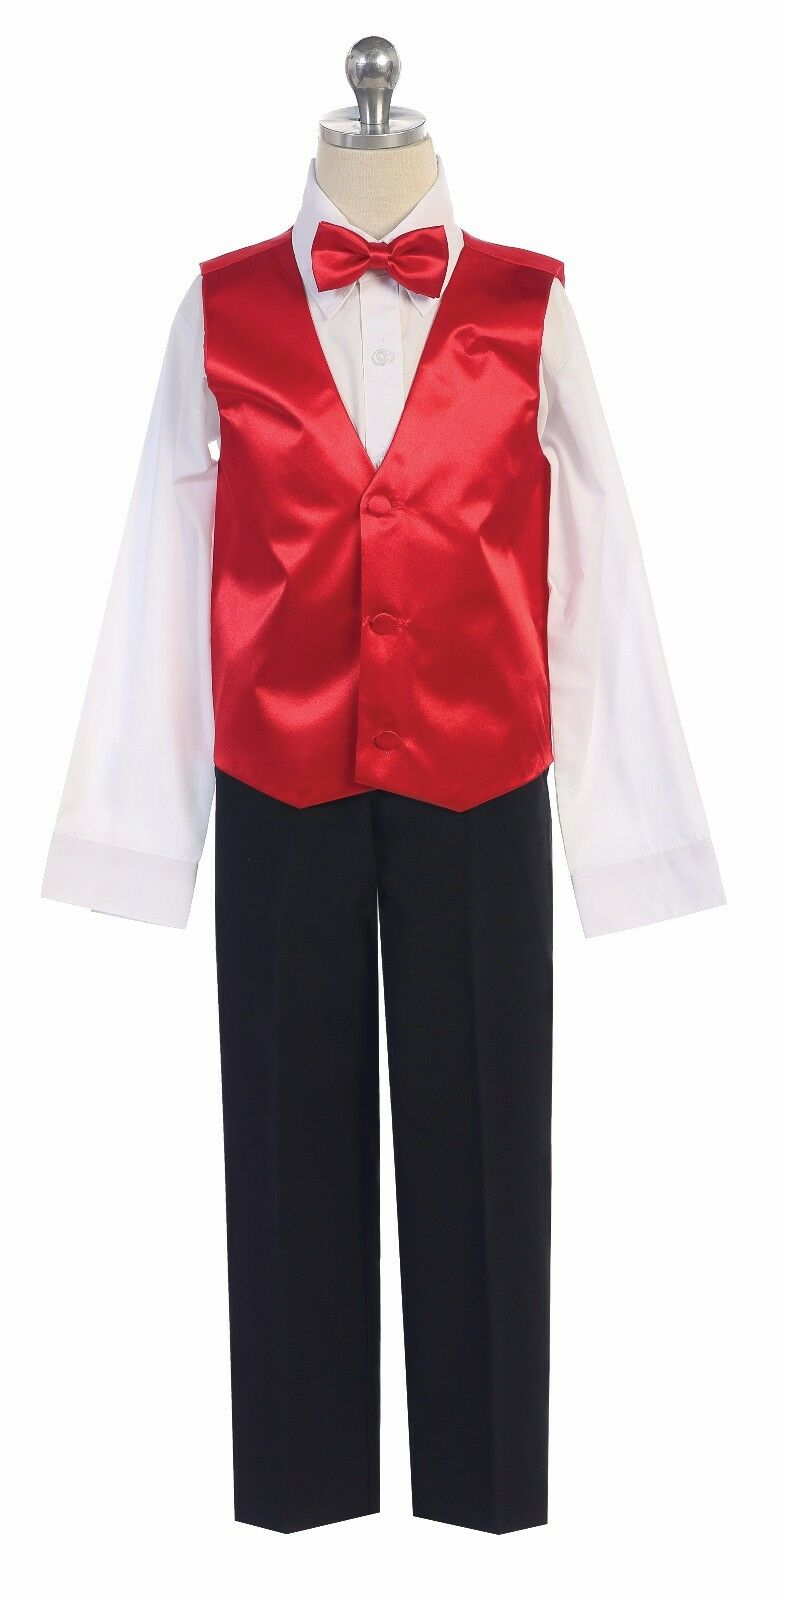 Boys Or Men Formal Satin Vest w/ Bowtie for Tuxedo Suit Made in USA All Colors